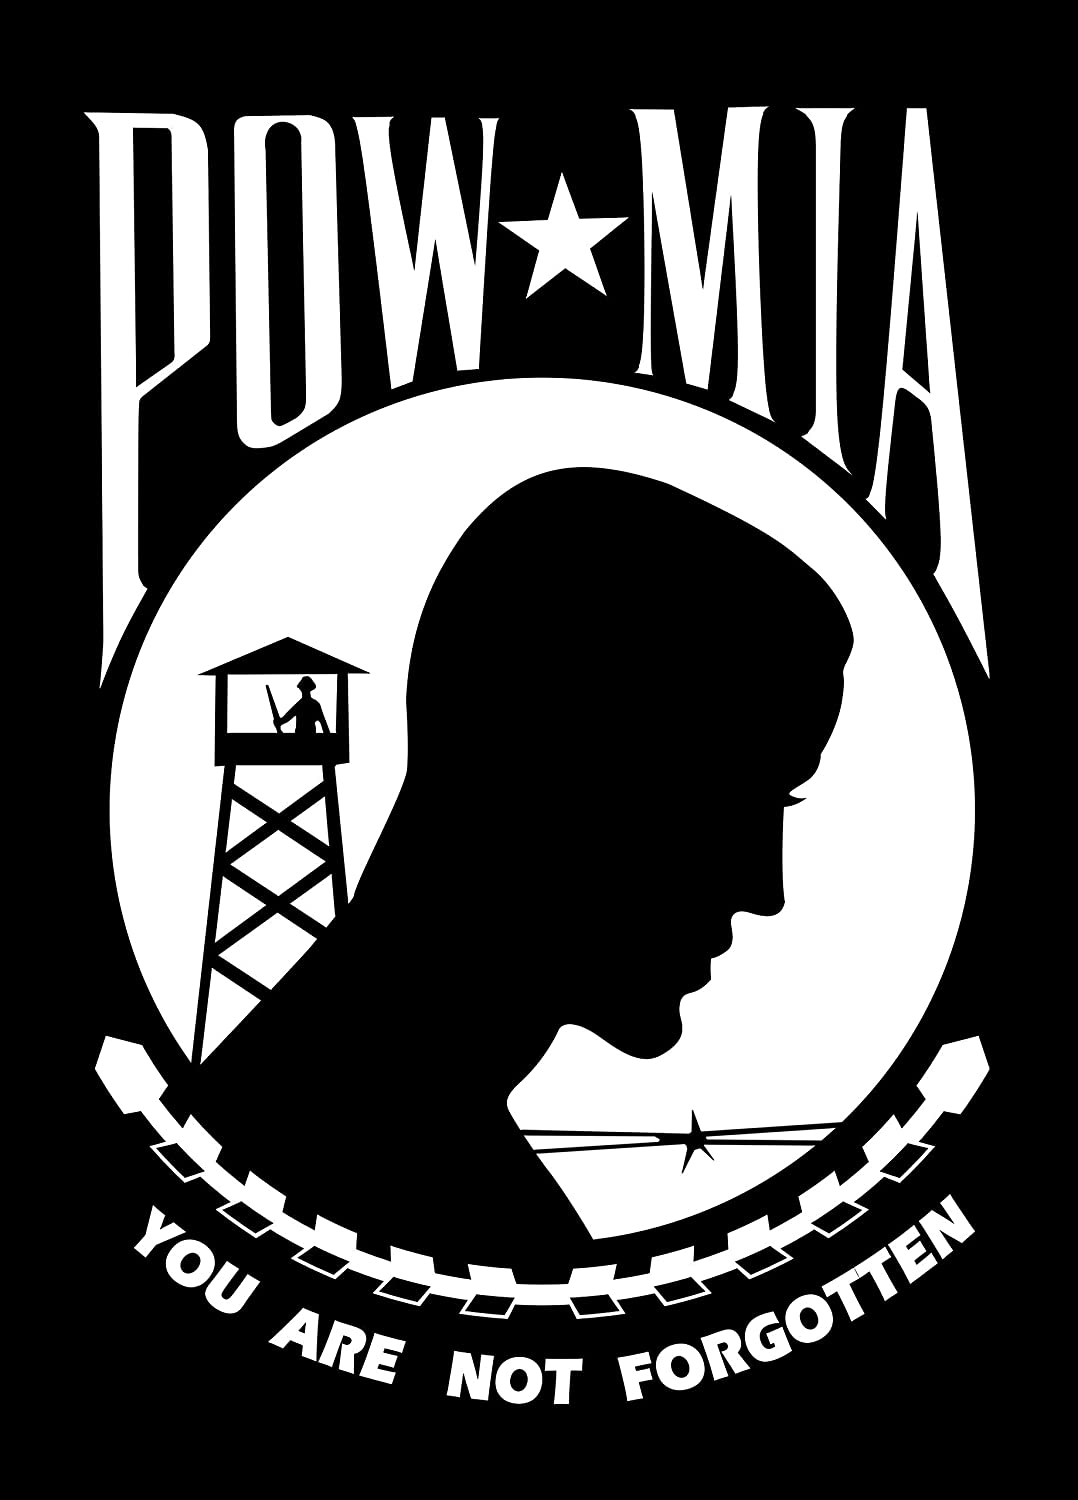 POW MIA YOU ARE NOT FORGOTTEN Sticker Decal